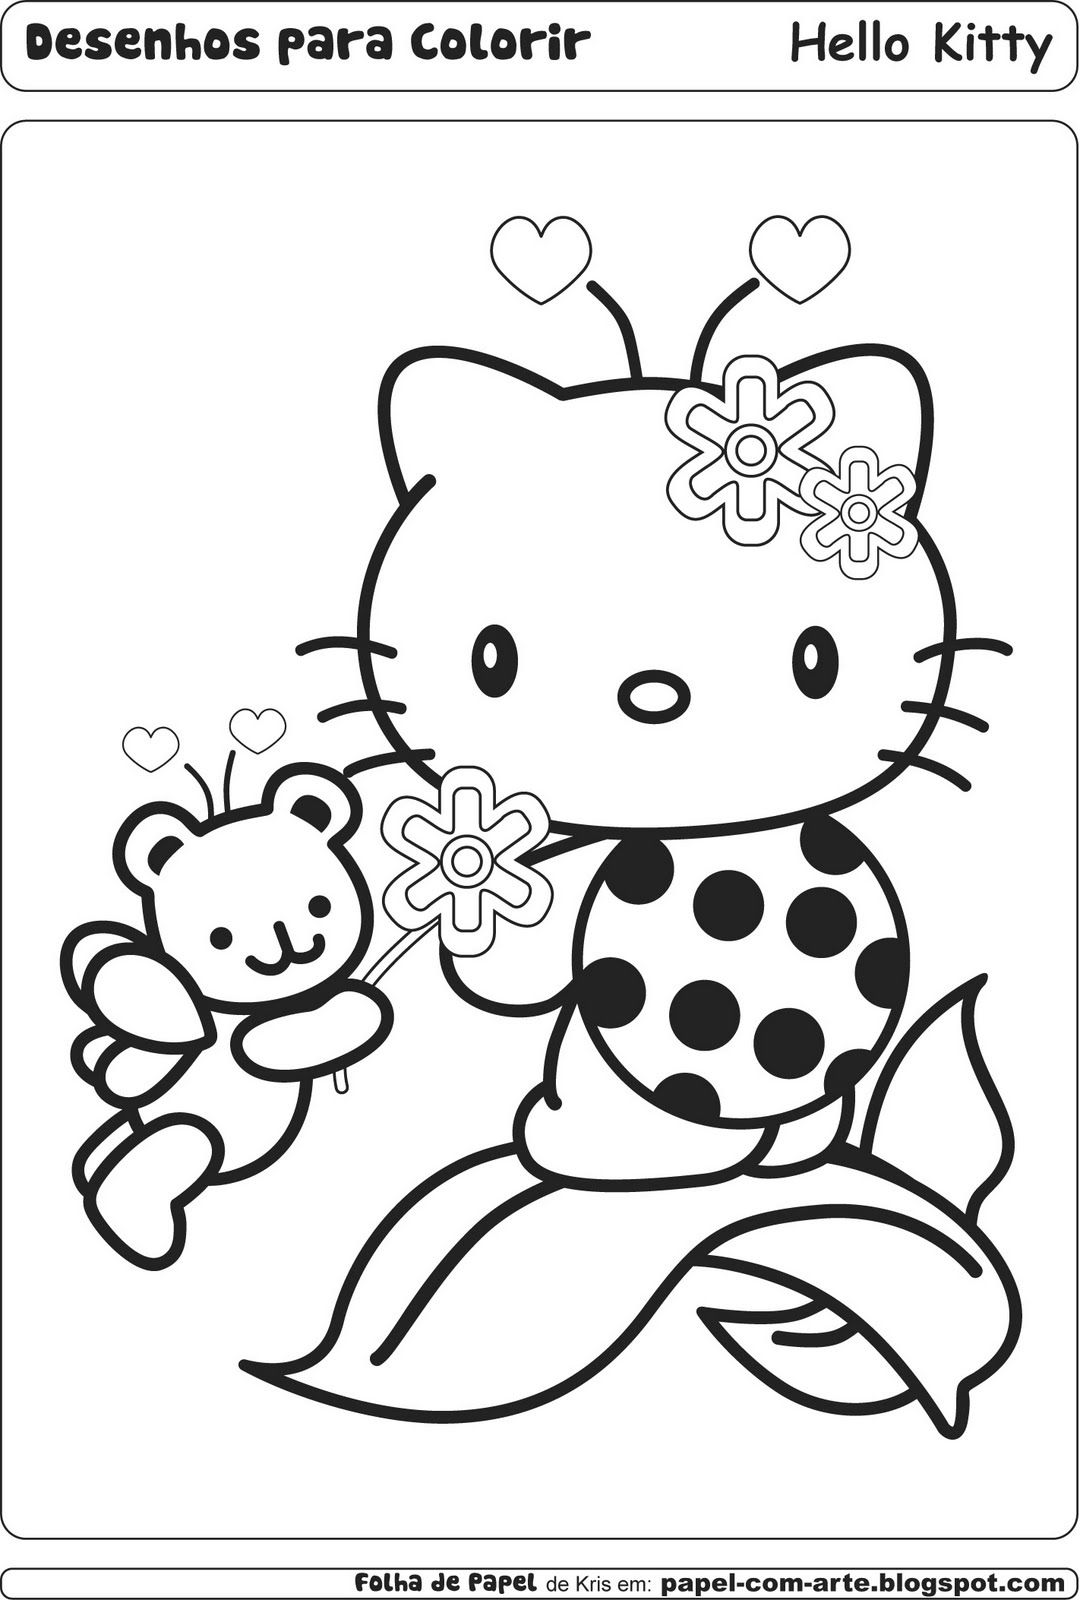 Hello Kitty With Images